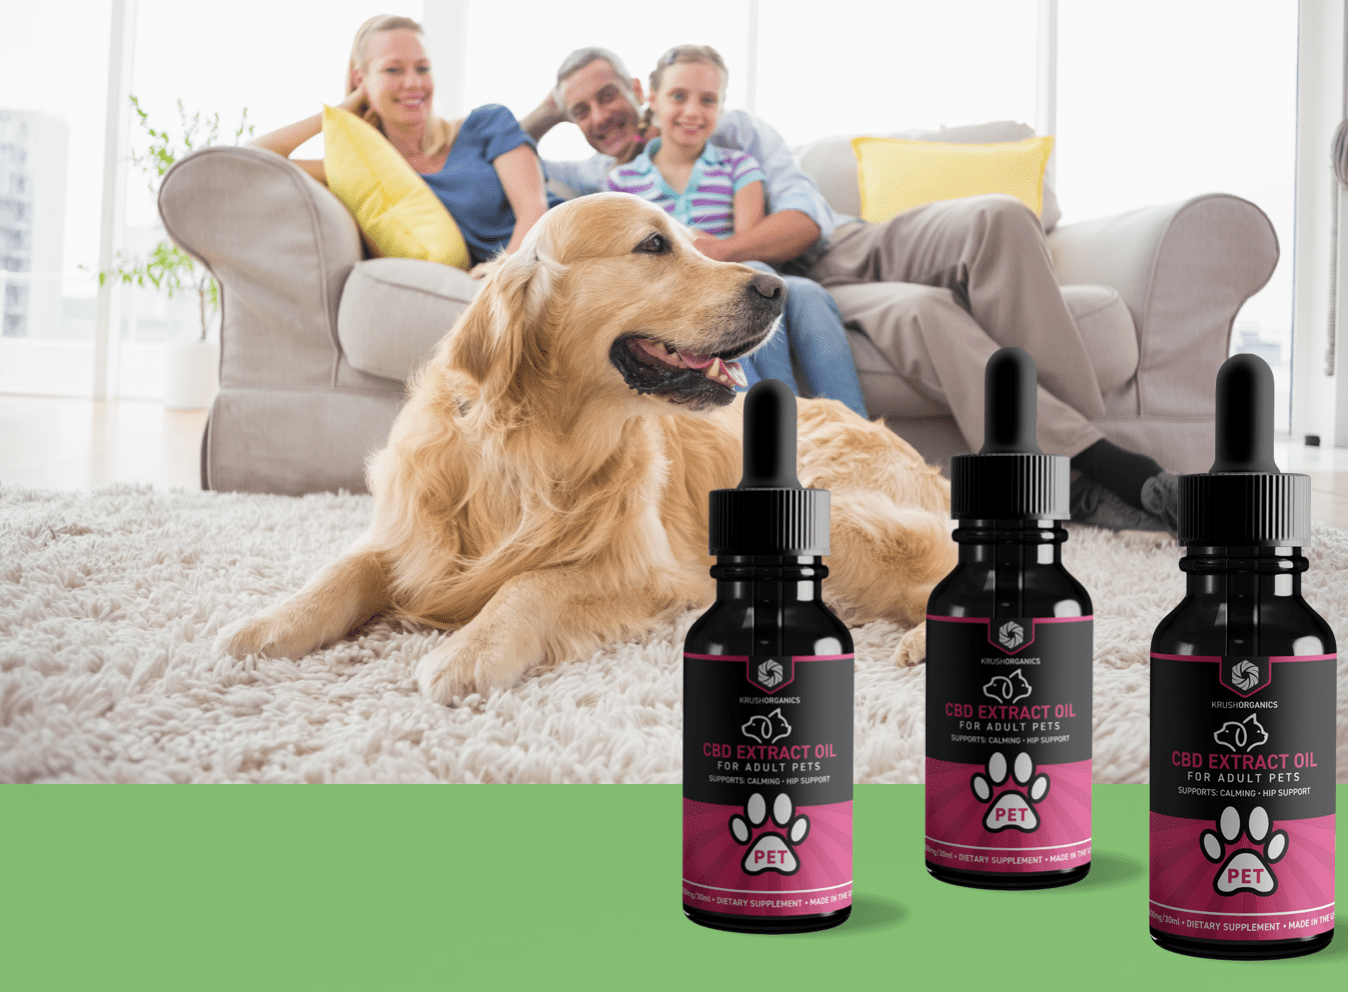 Pet Care - CBD Oil Extracts